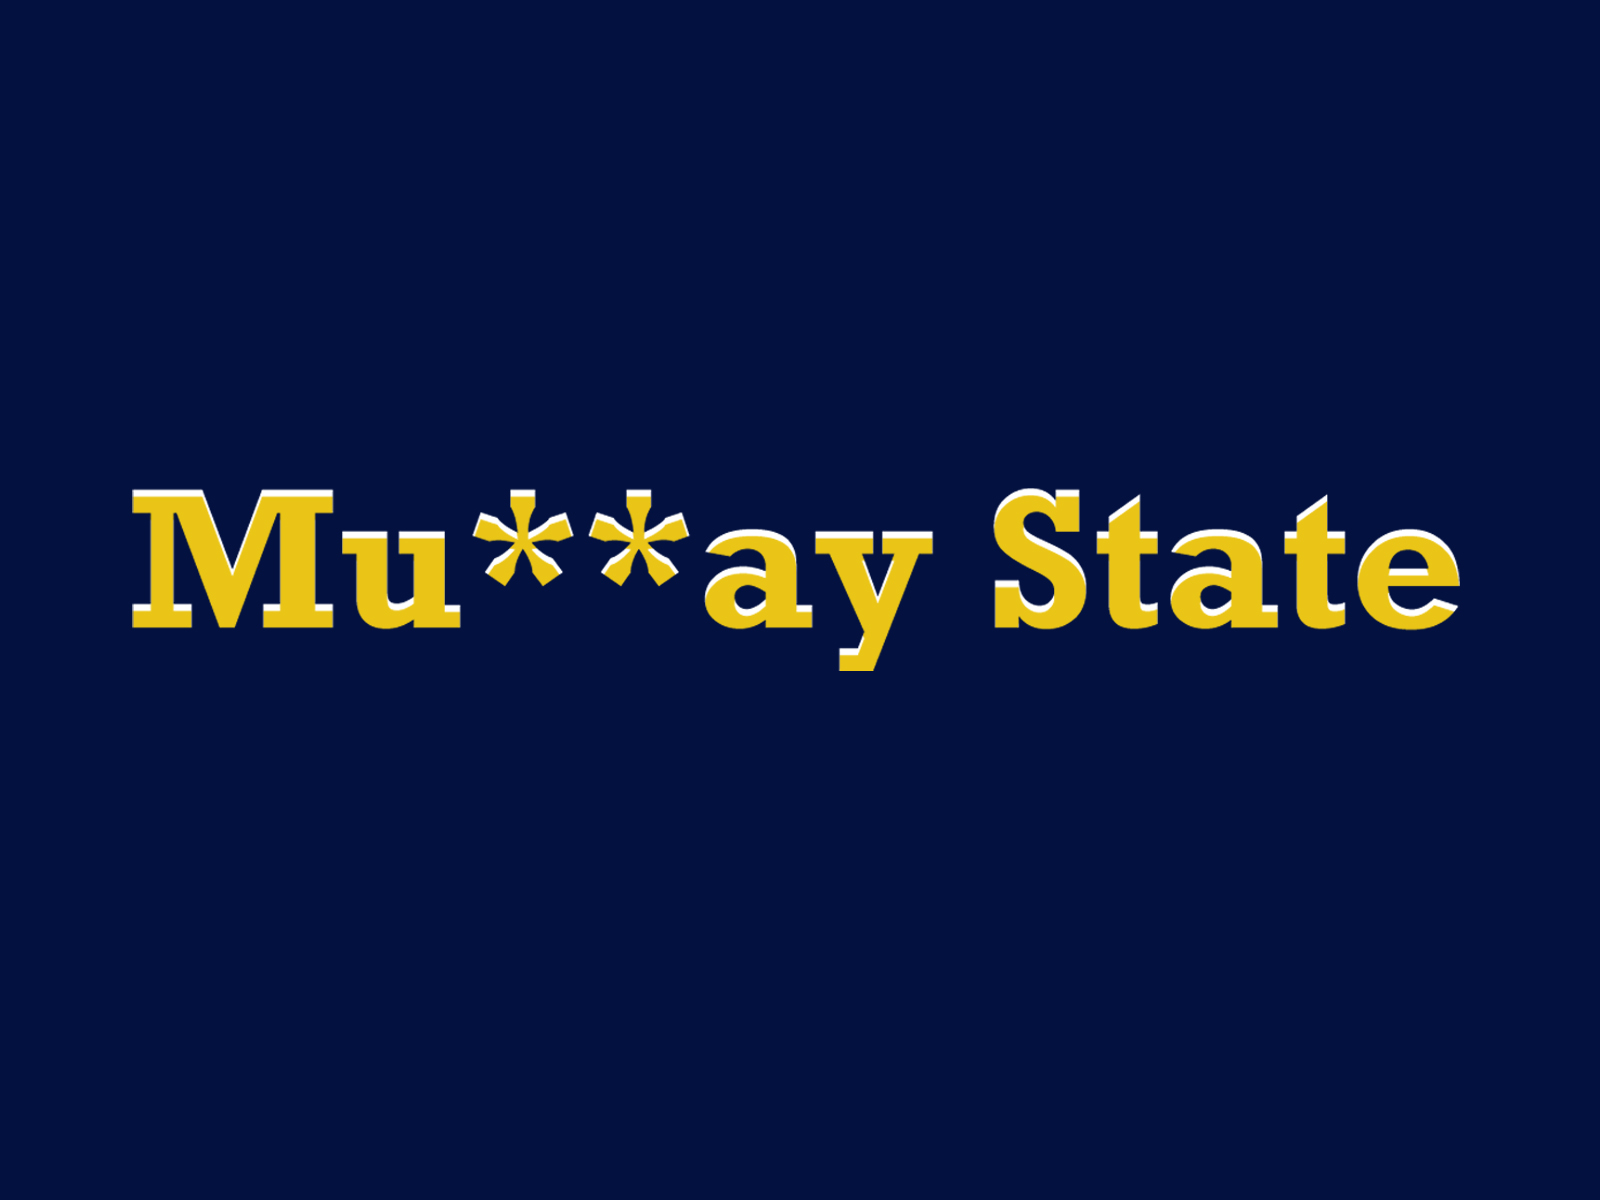 The All State popularized the use of Mu**ay State throughout the campus of APSU. SHANIA GREEN | THE ALL STATE